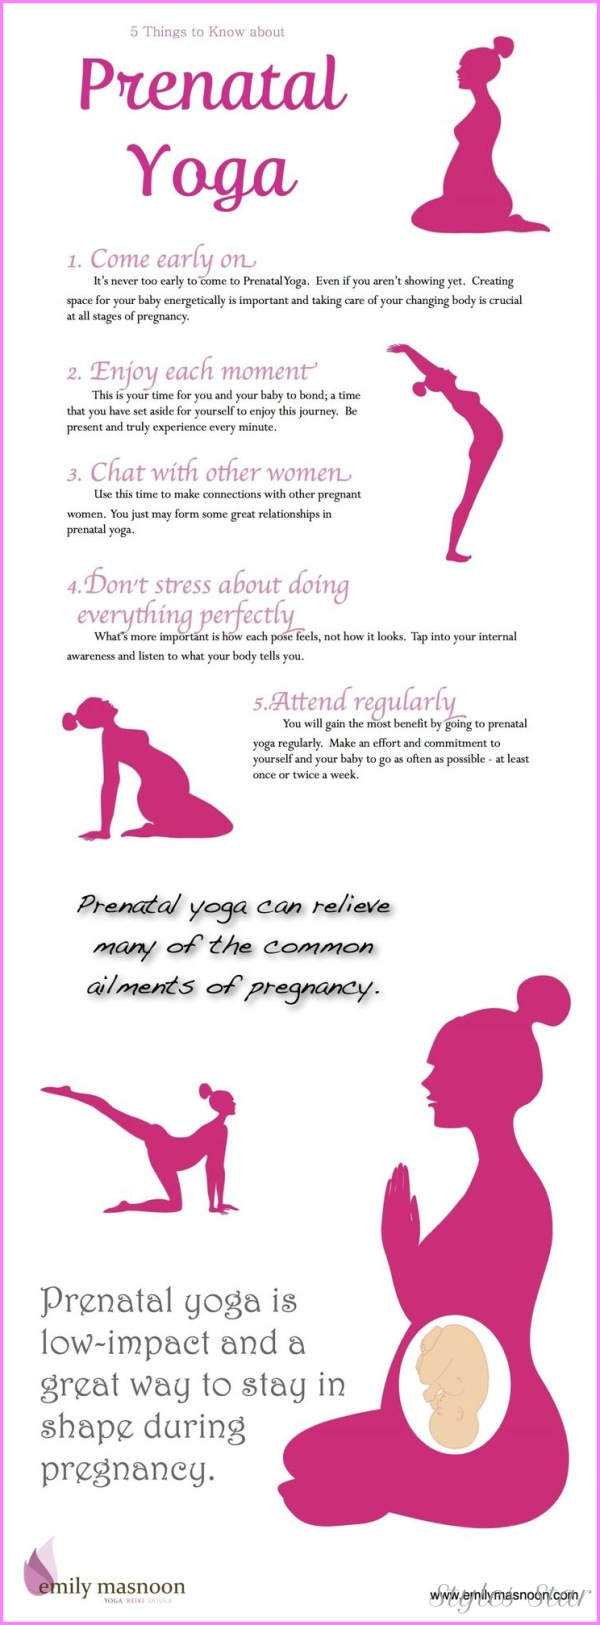 lower back exercises during pregnancy 2 Lower Back Exercises During Pregnancy